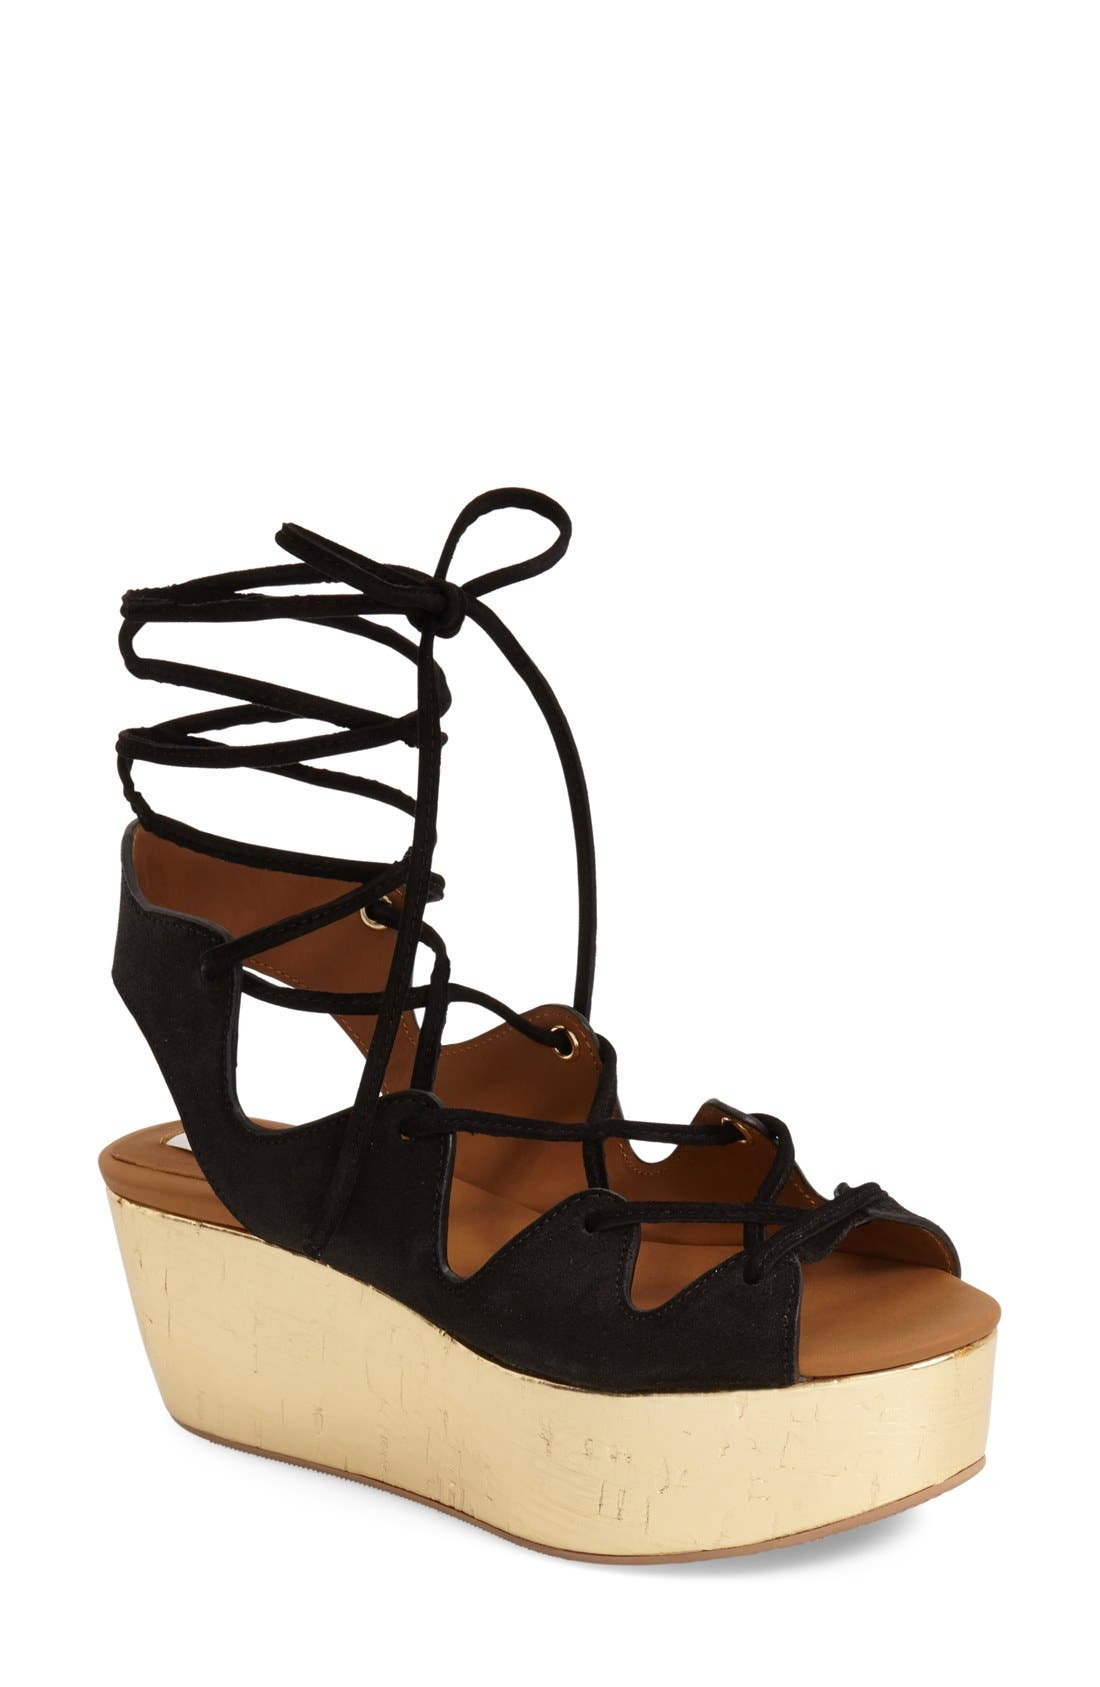 'Liana' Platform Wedge Sandal,                             Main thumbnail 1, color,                             001